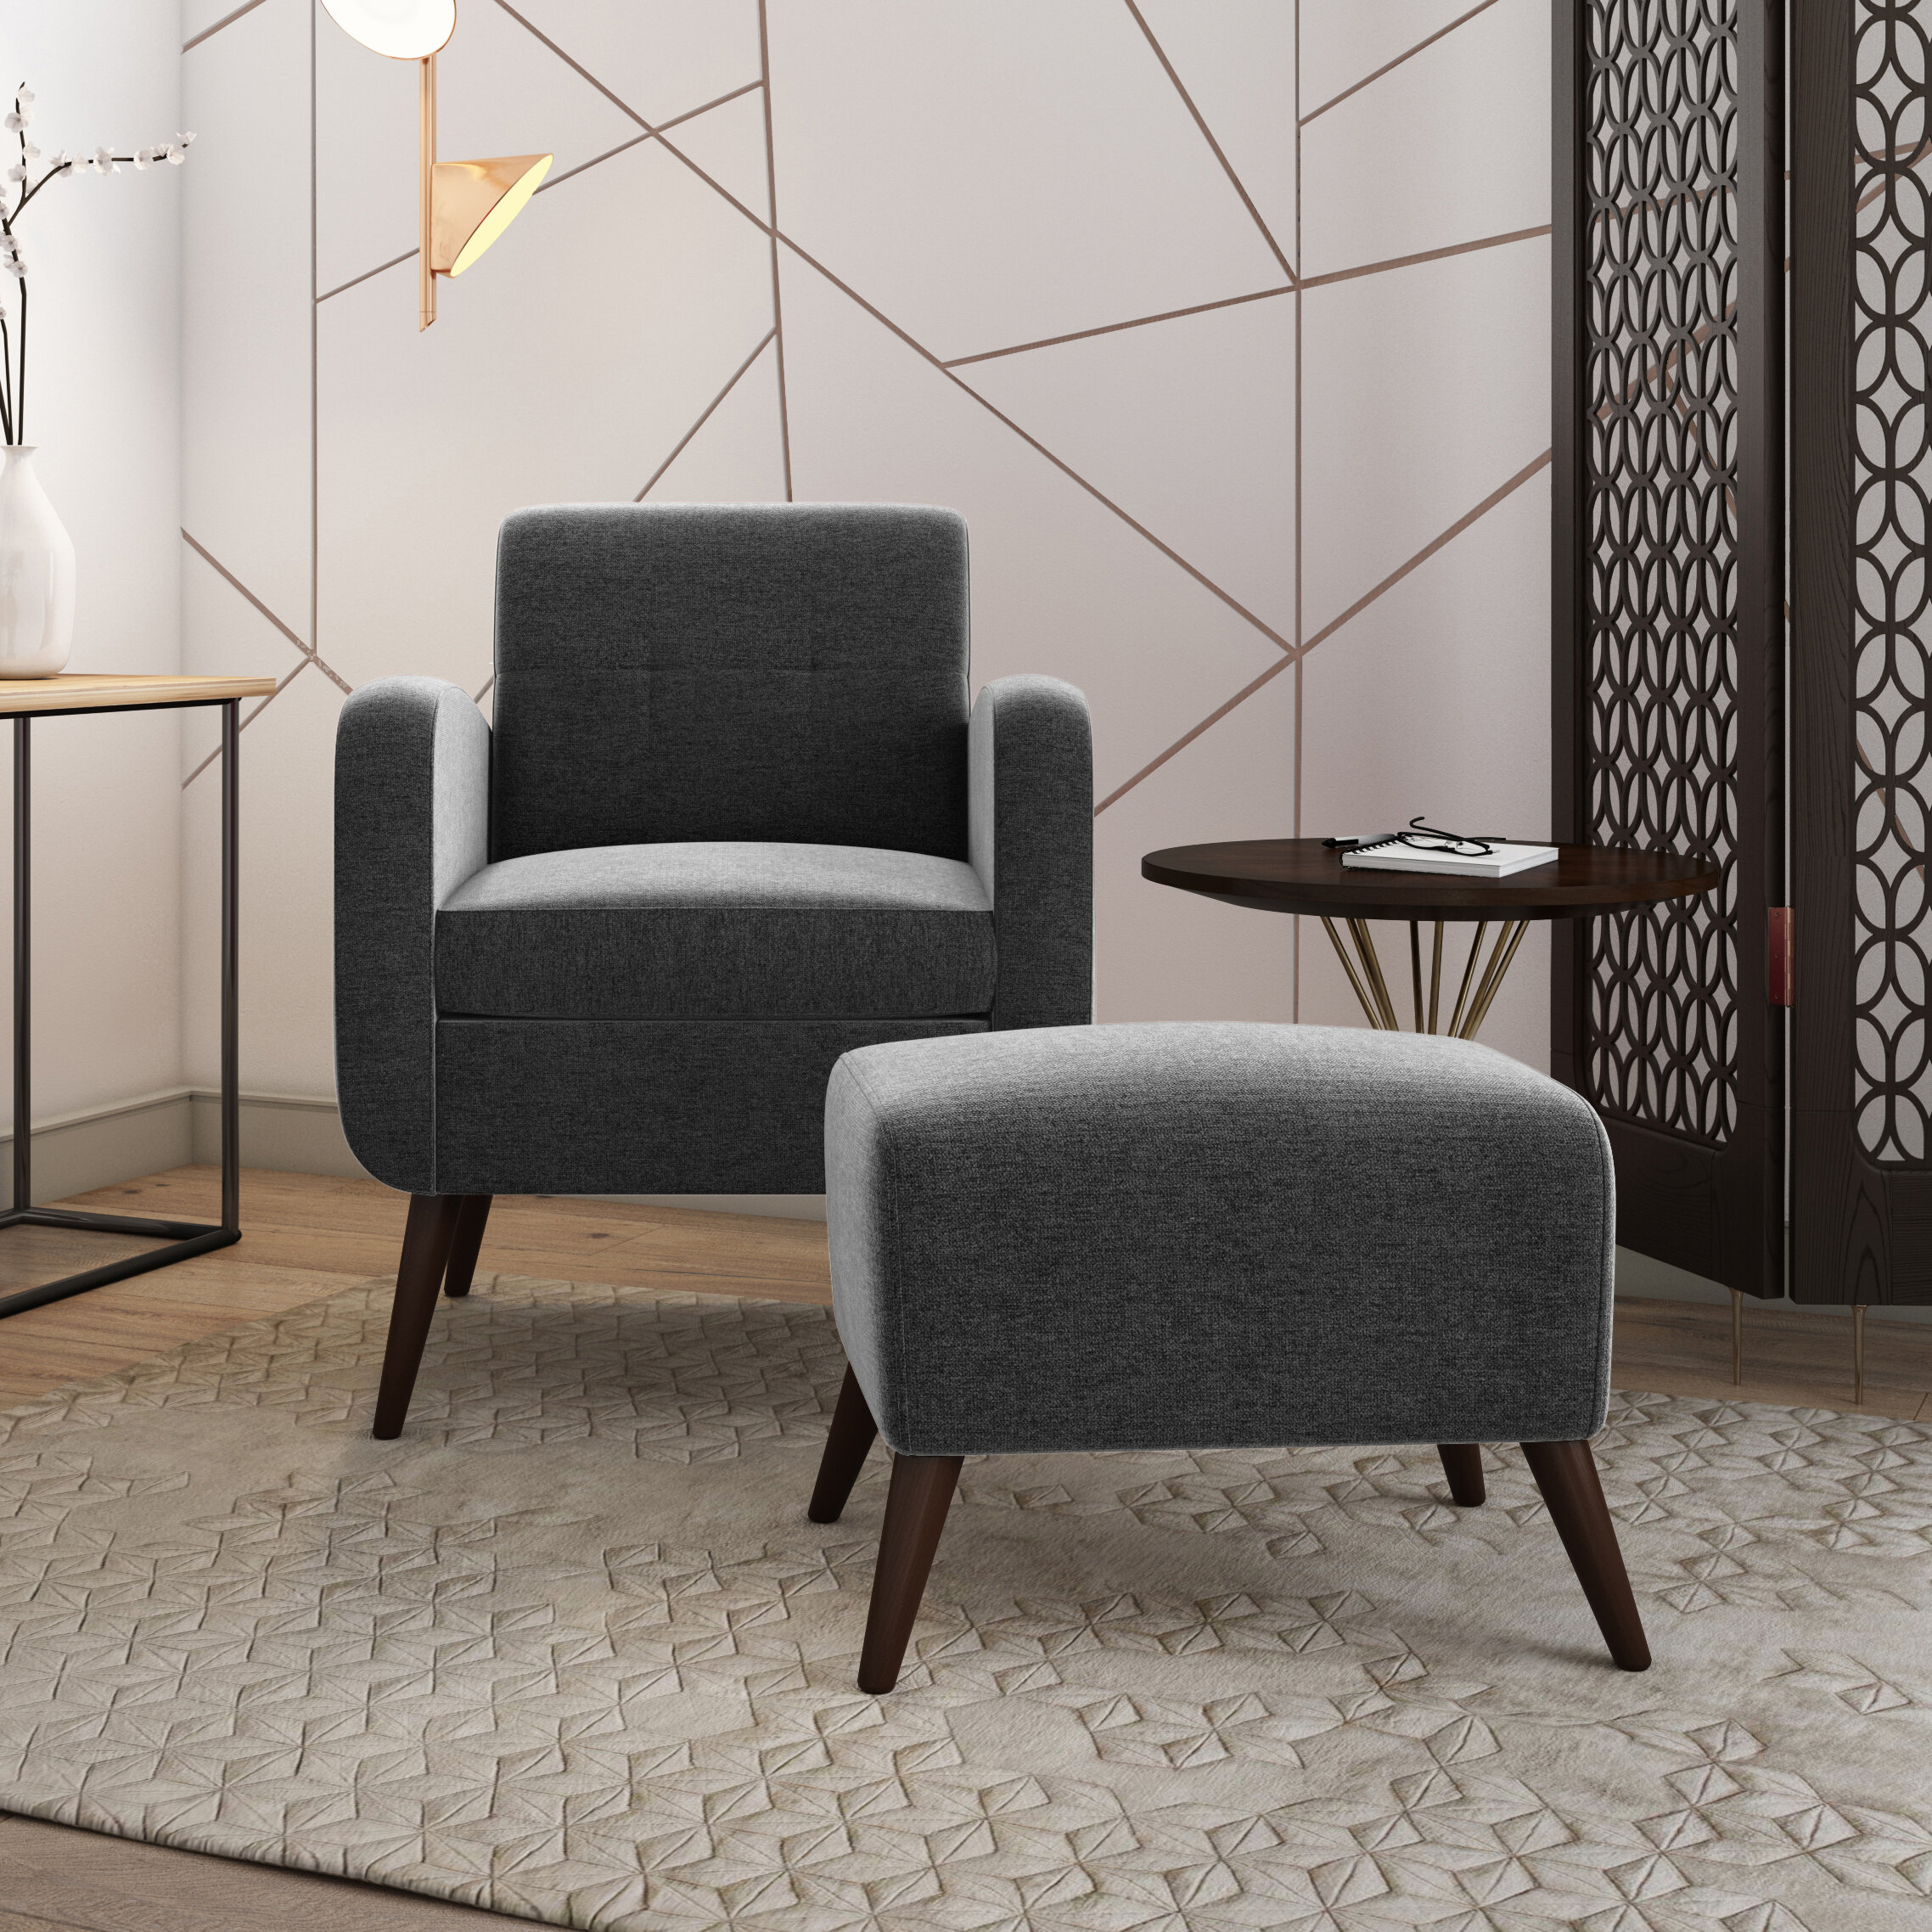 """Dario 22"""" W Polyester Slipper Chair And Ottoman Regarding Harmon Cloud Barrel Chairs And Ottoman (View 15 of 15)"""